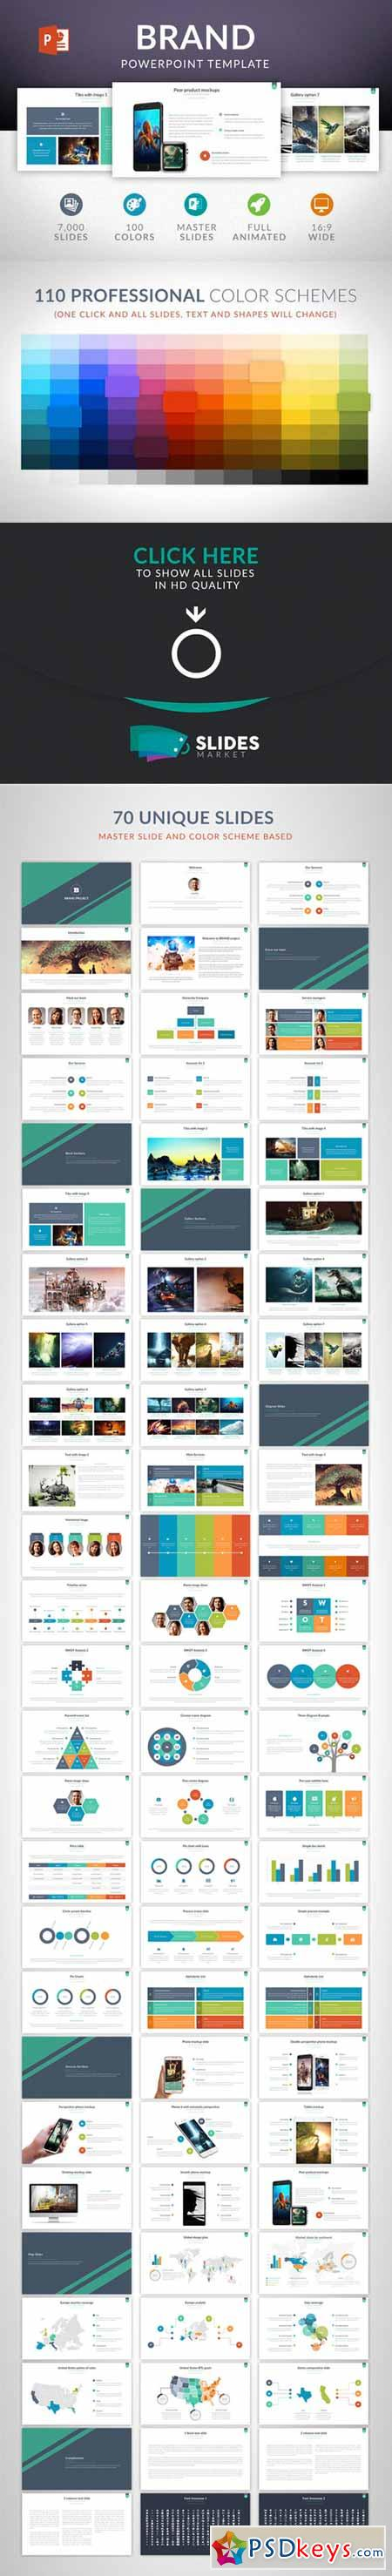 Brand Powerpoint Template 412654